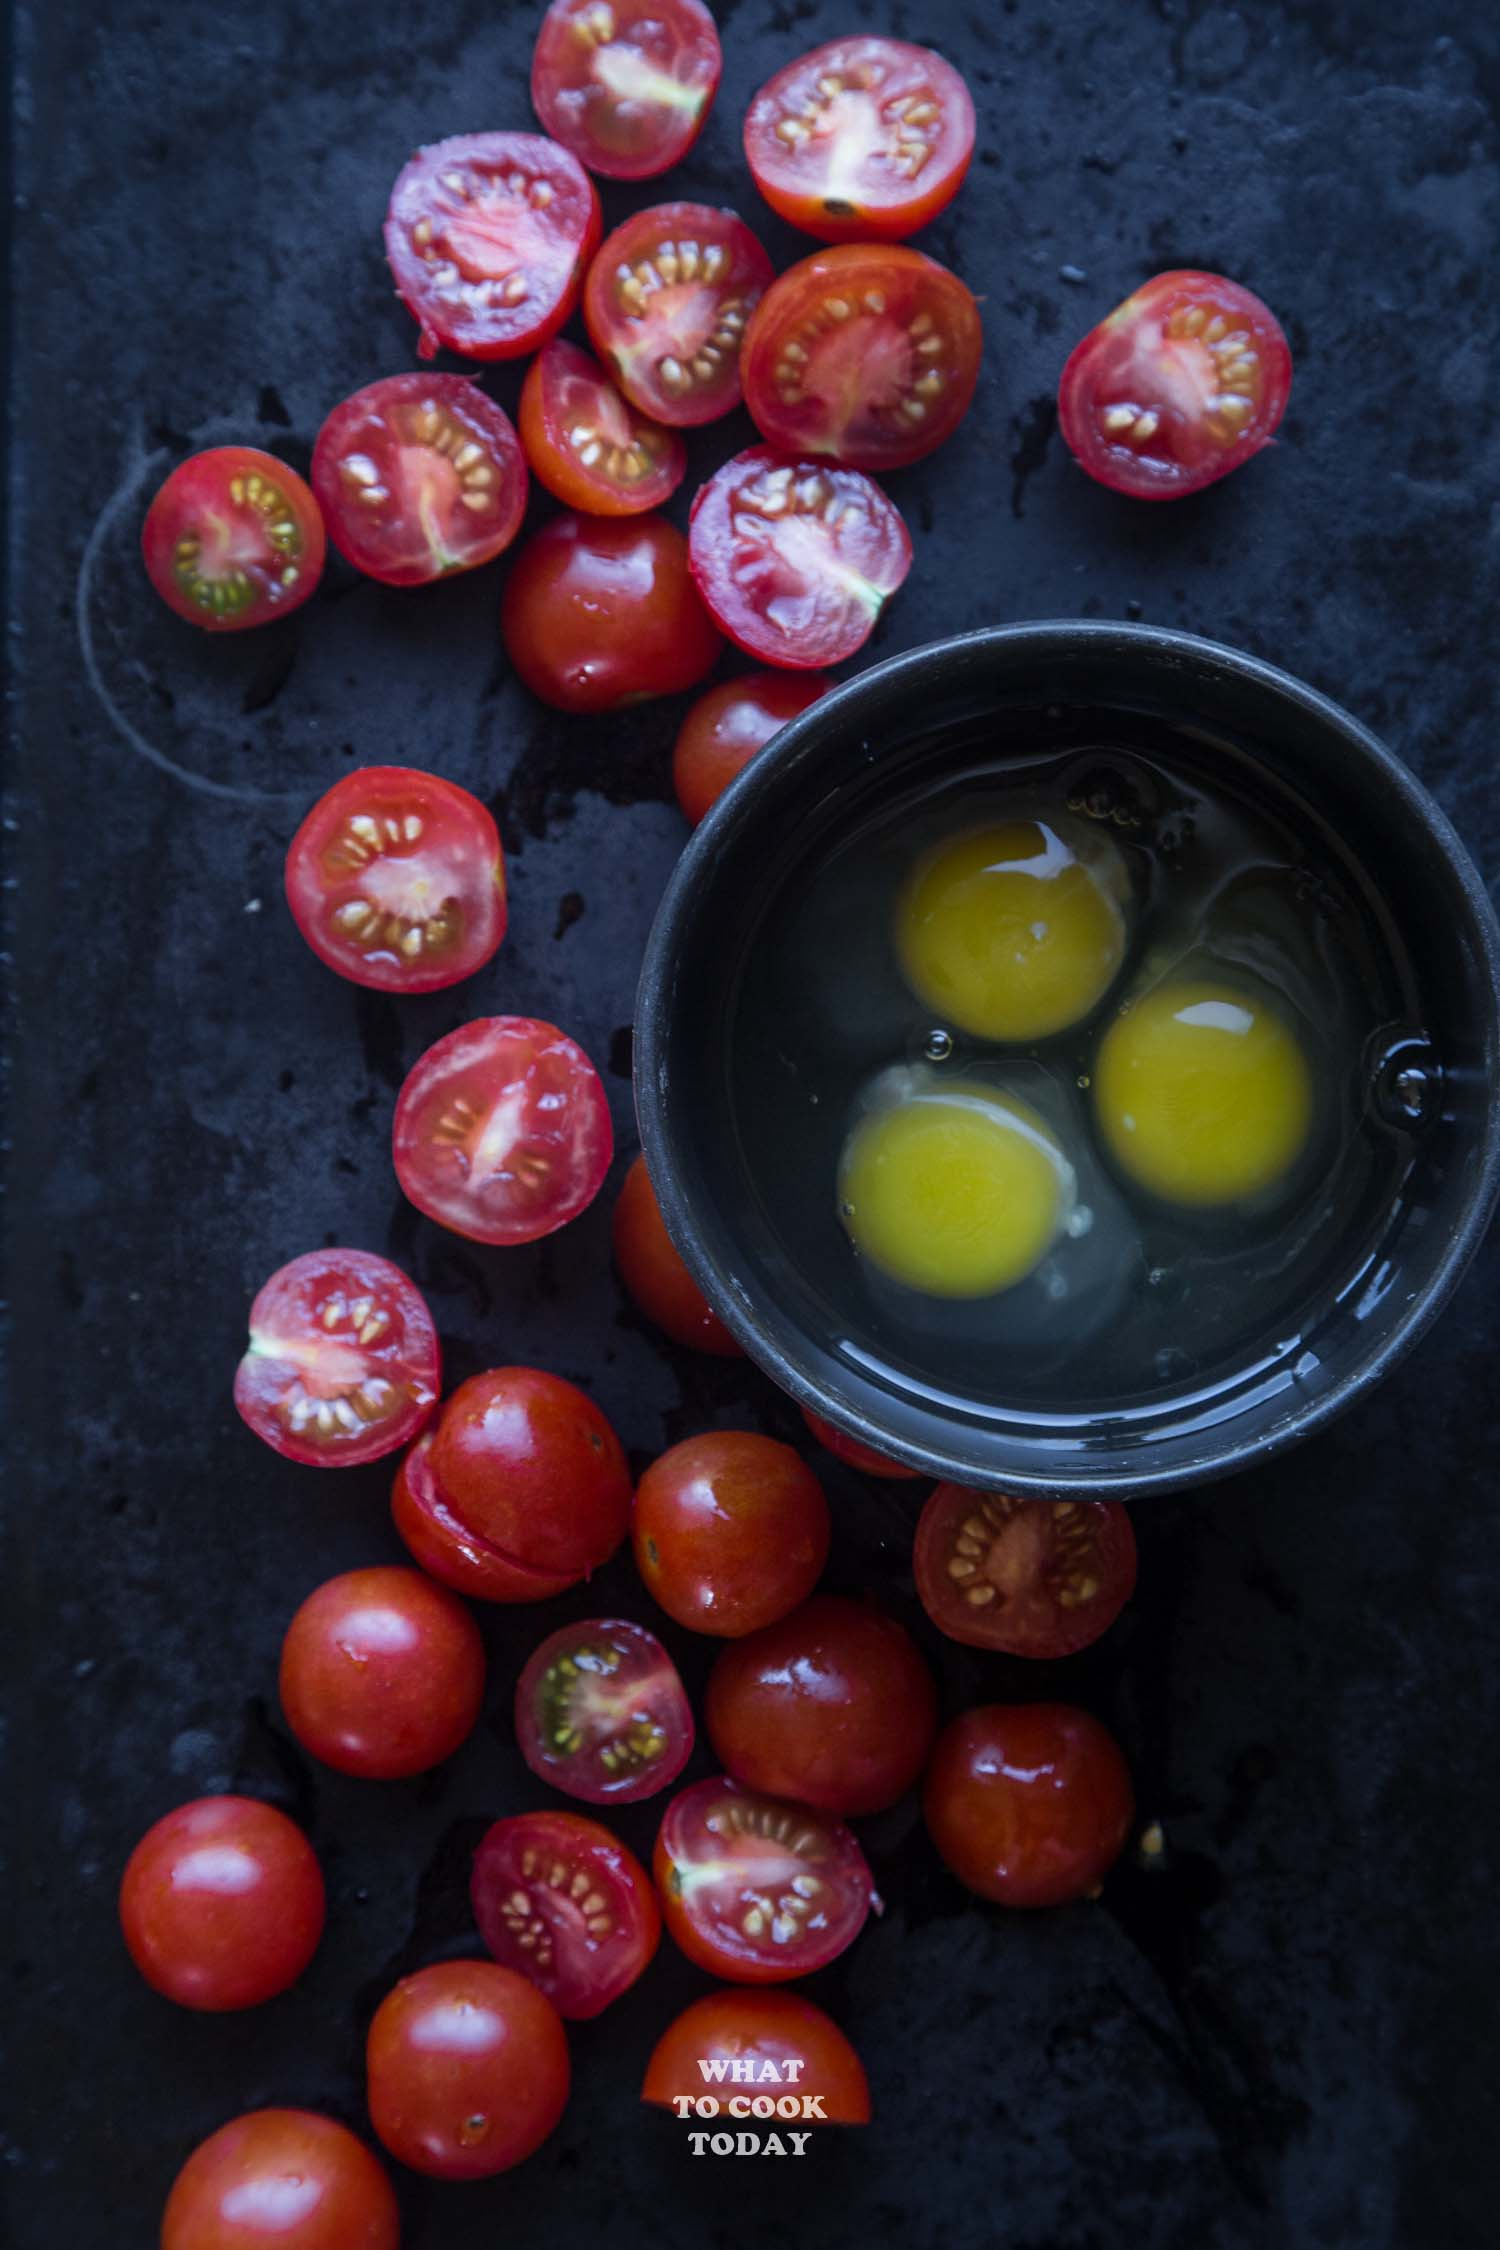 15-Minute One-Pan Tomato and Egg Stir-fry